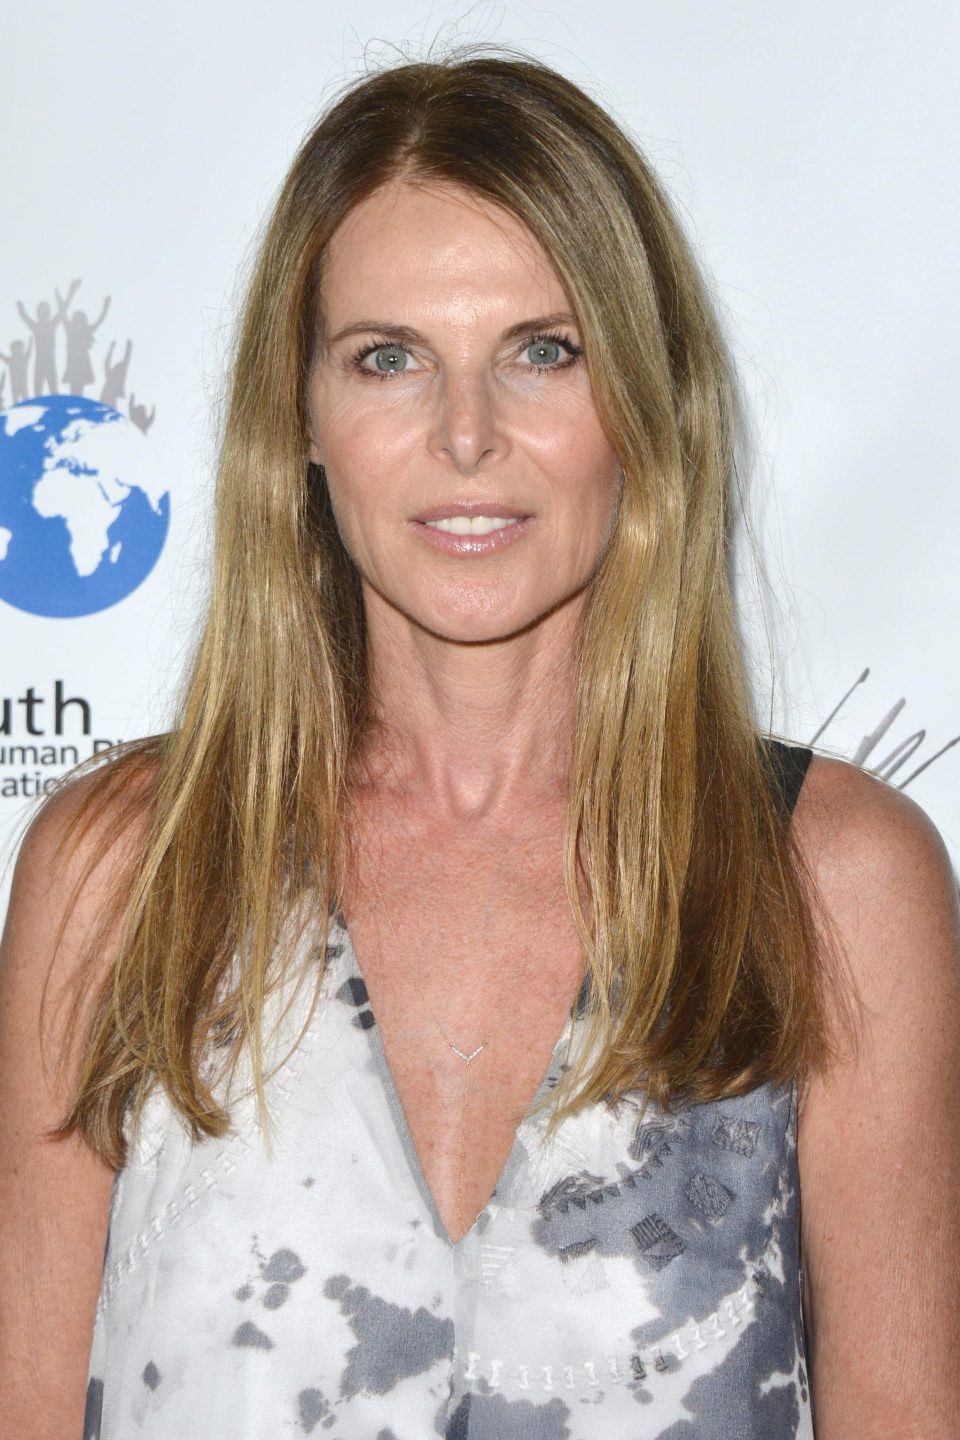 Dynasty star Catherine Oxenberg fears her daughter has been 'brainwashed' by the cult